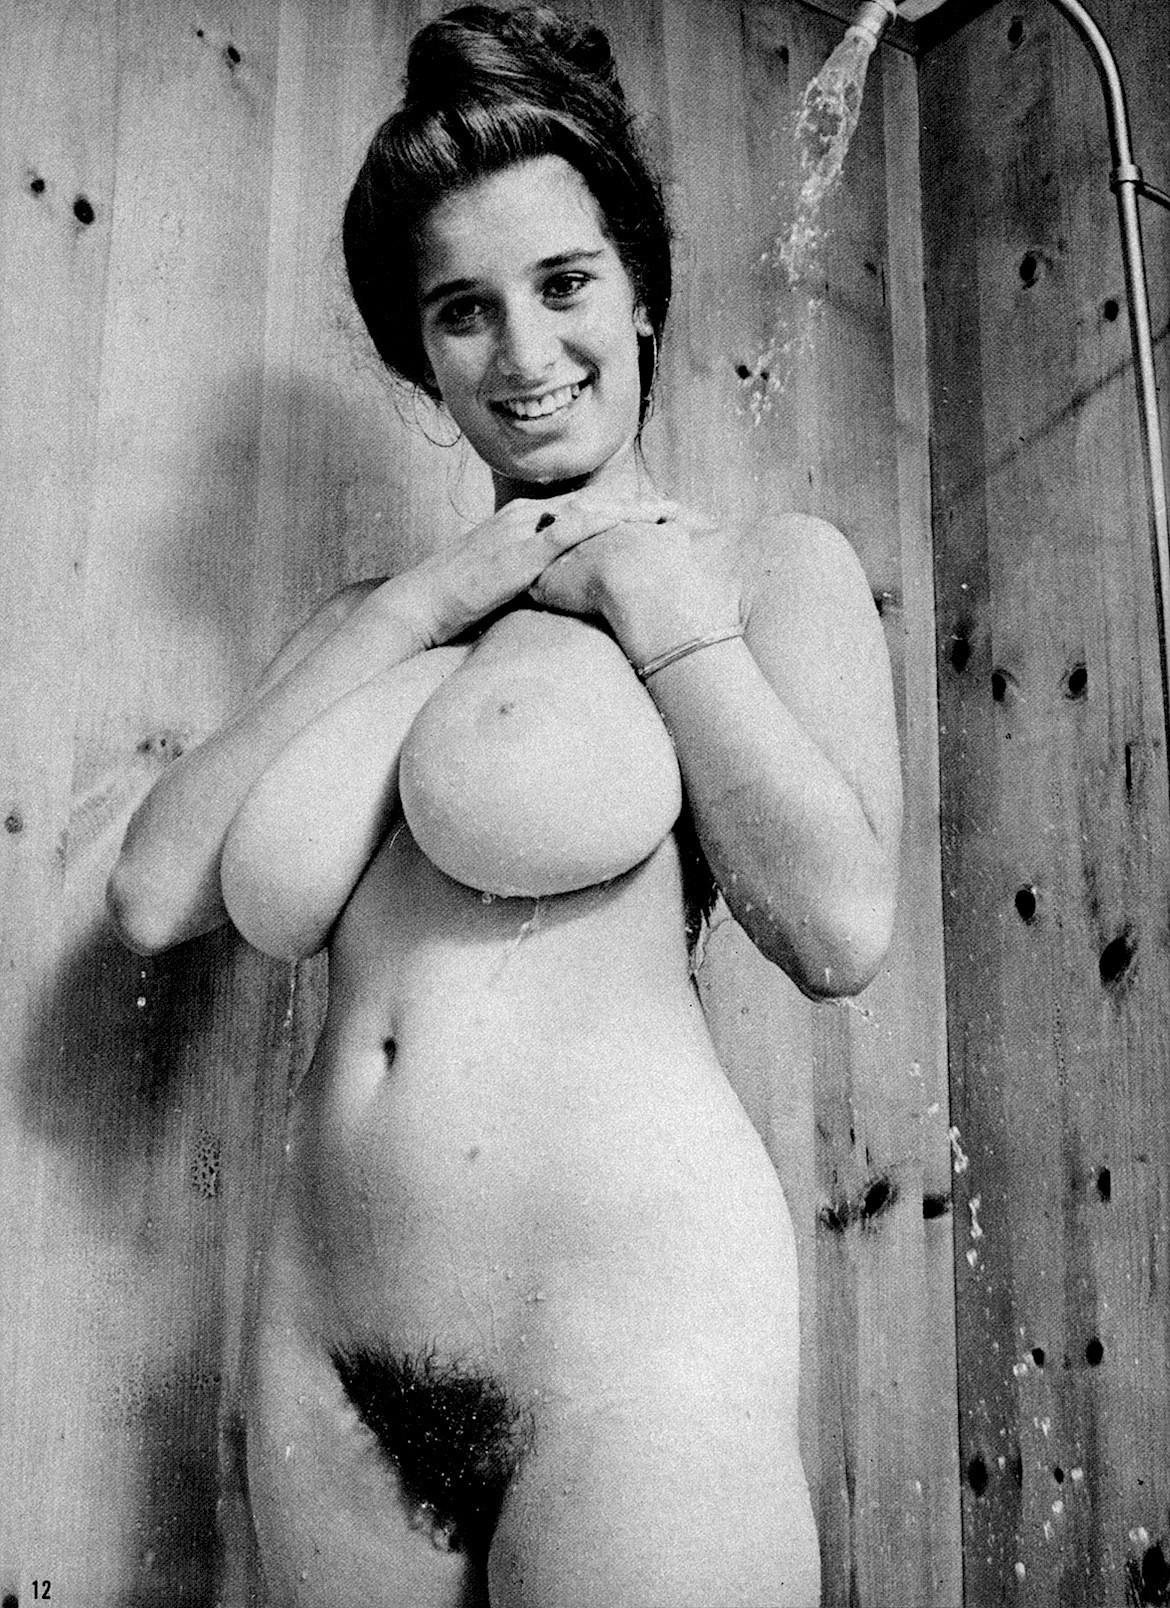 Retro vintage big boobs nude think, that